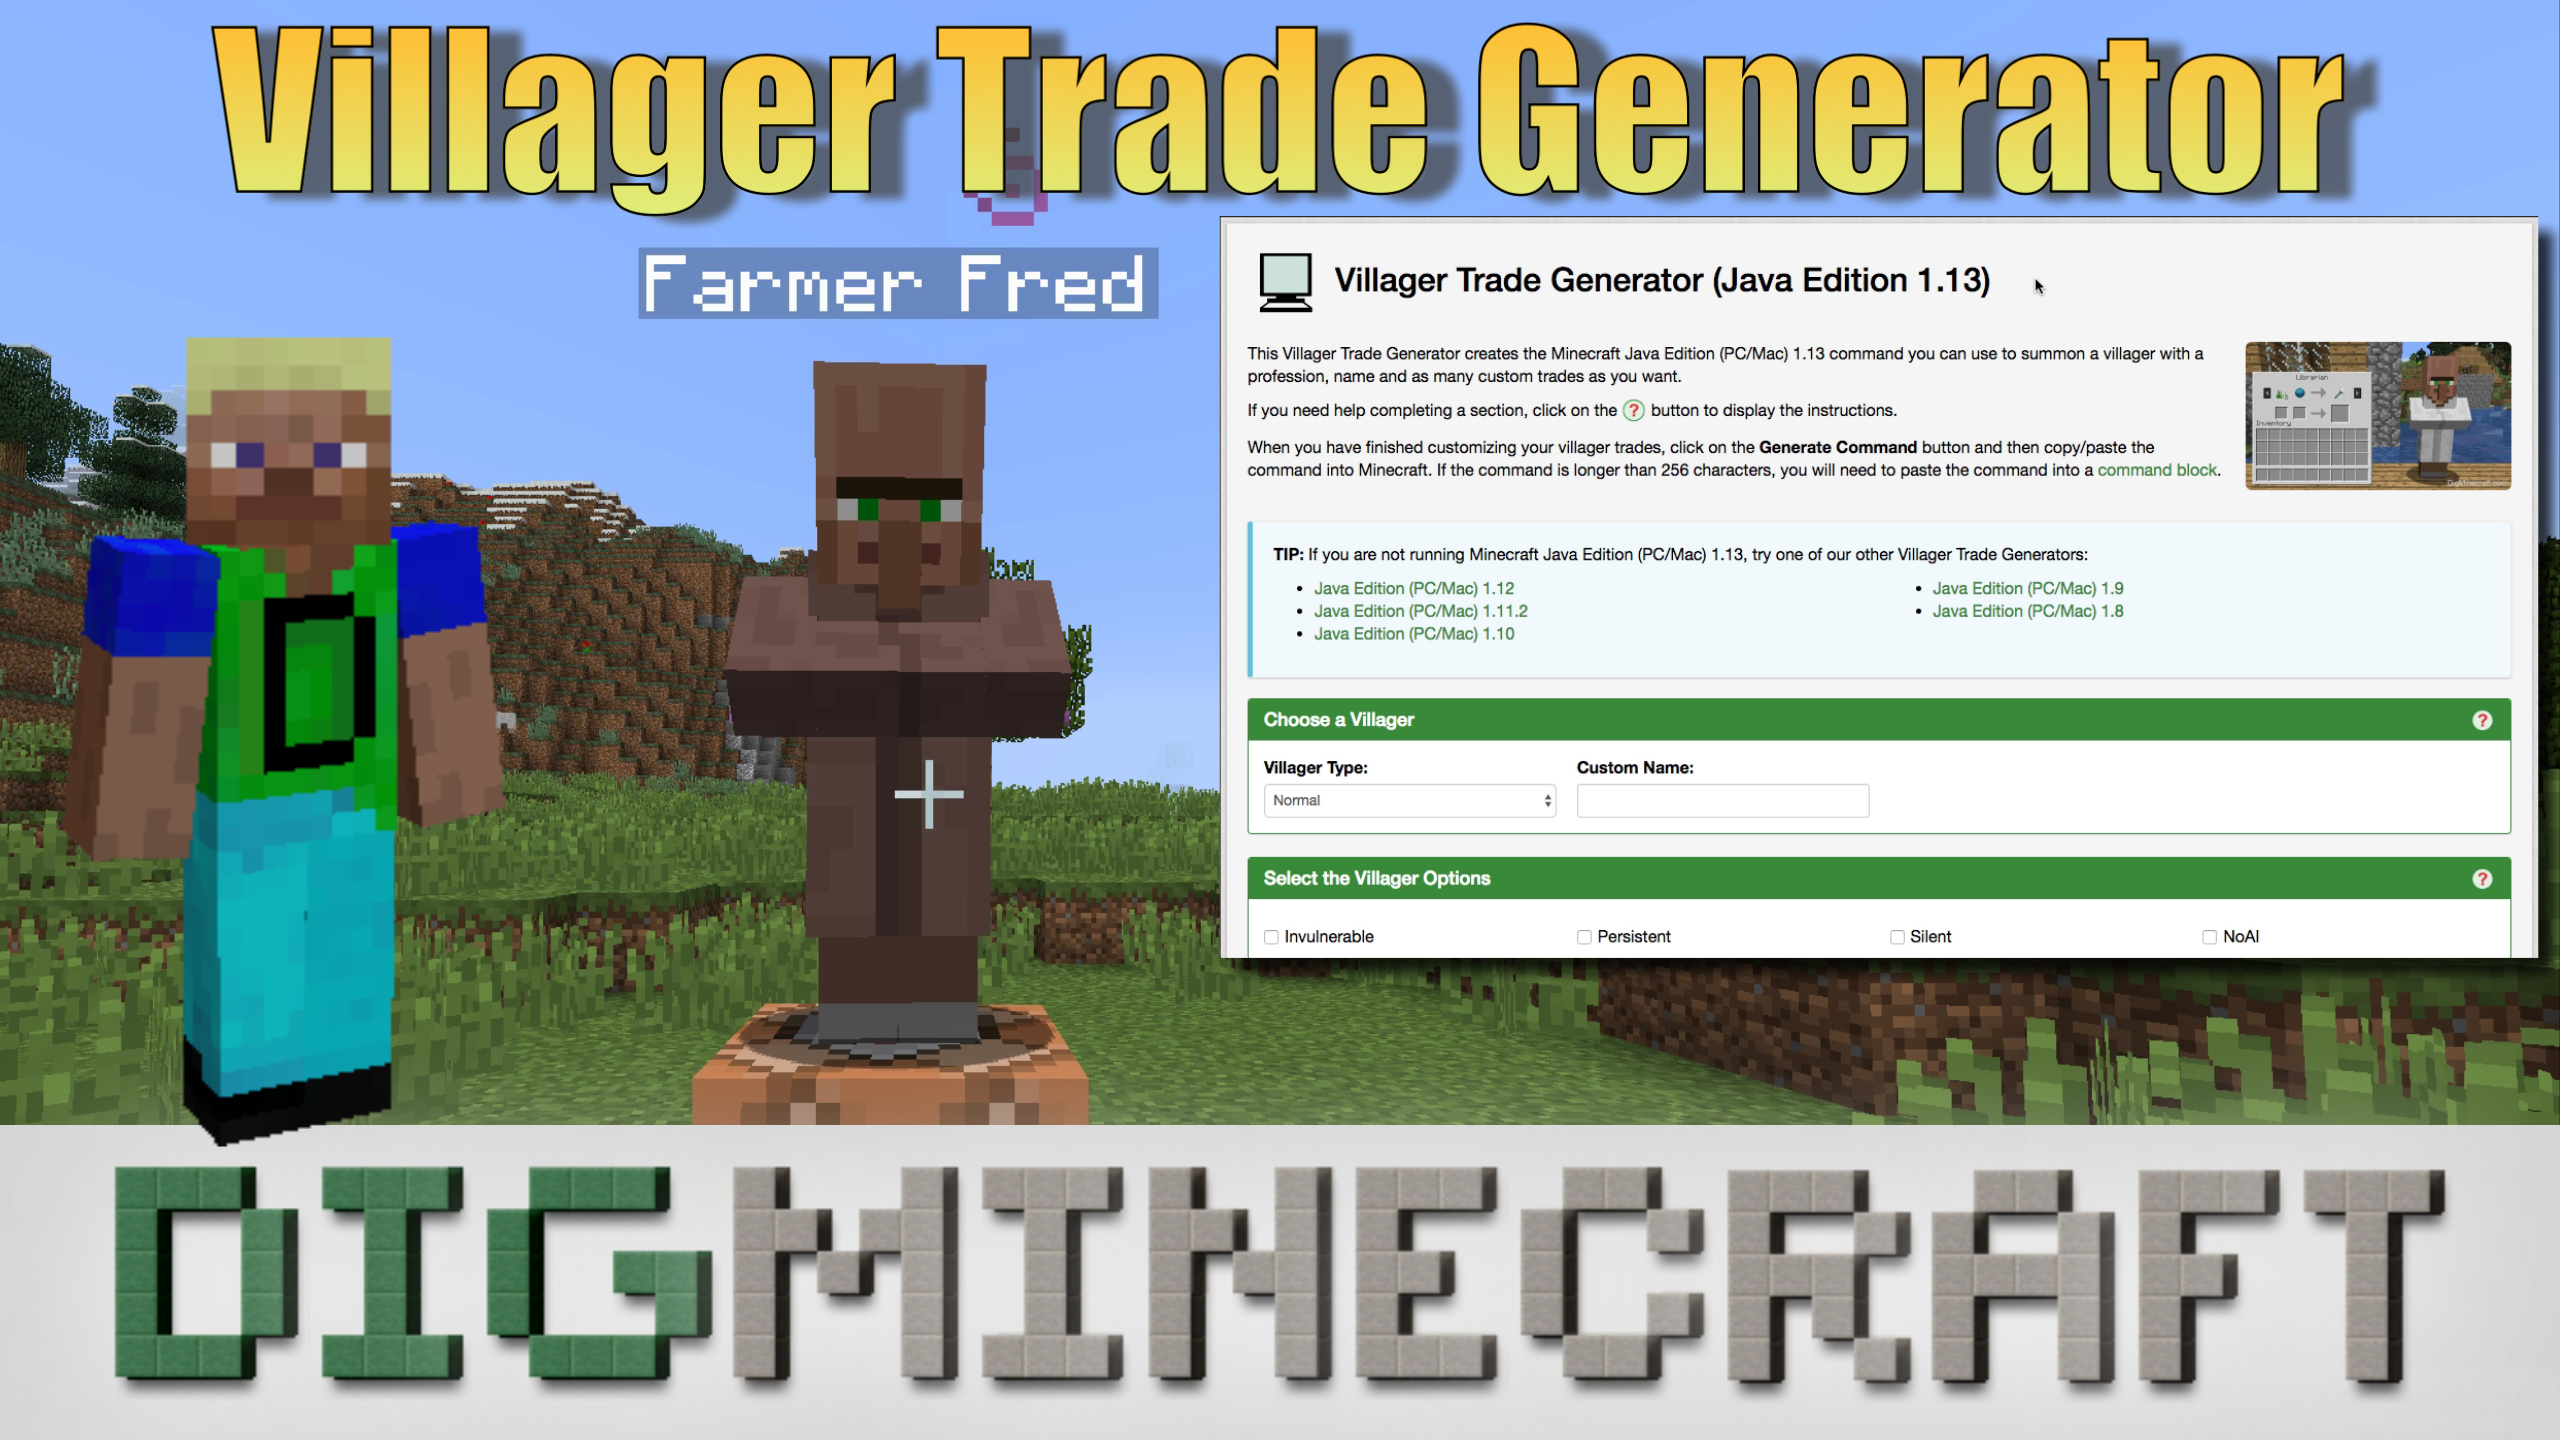 Have you ever wanted to summon a #Minecraft villager with